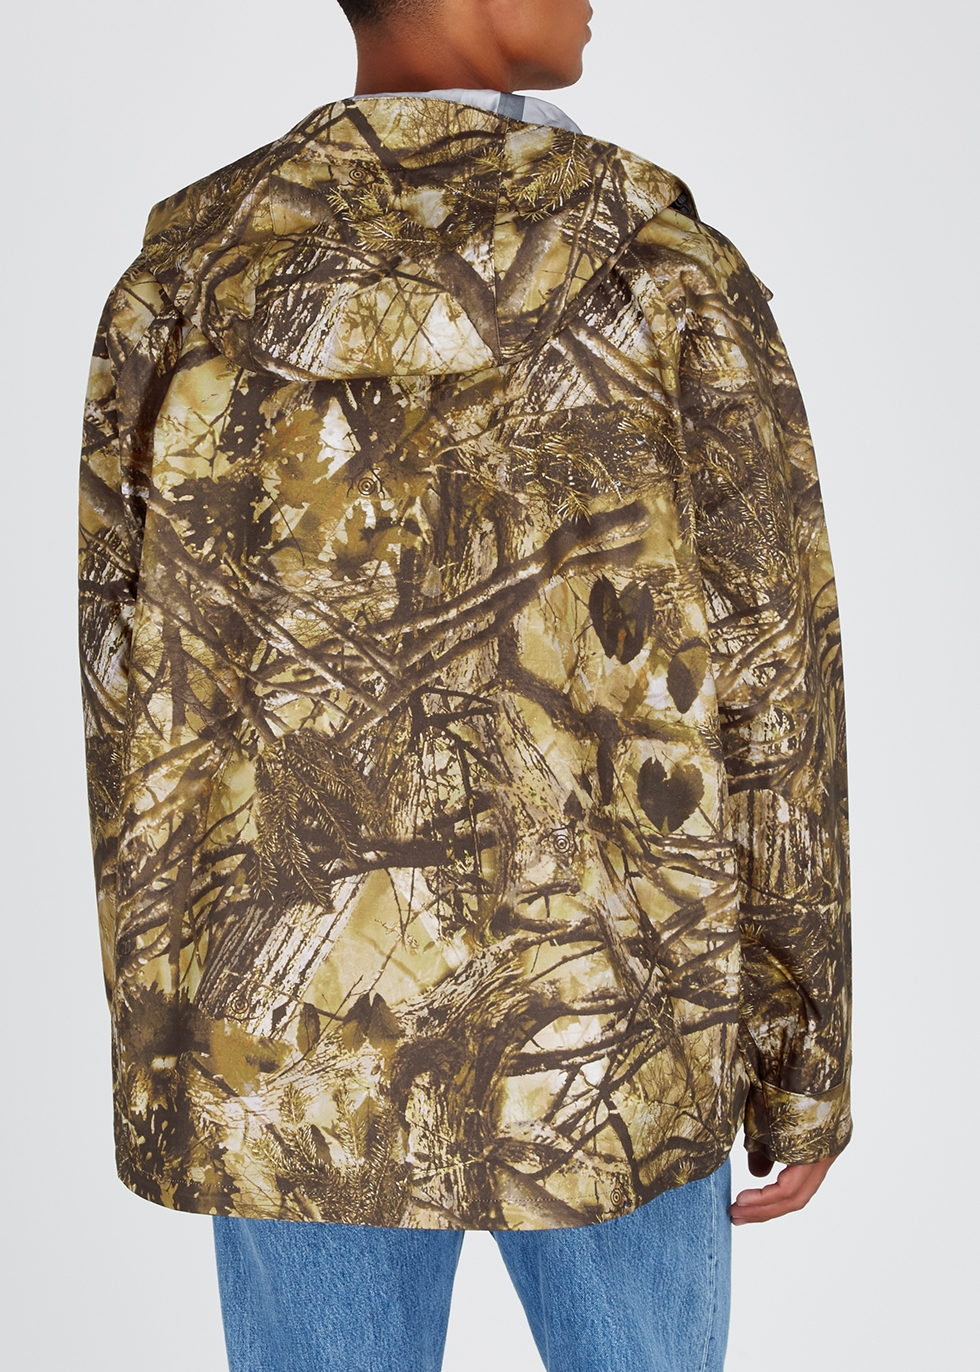 Printed cotton jacket - South2 West8